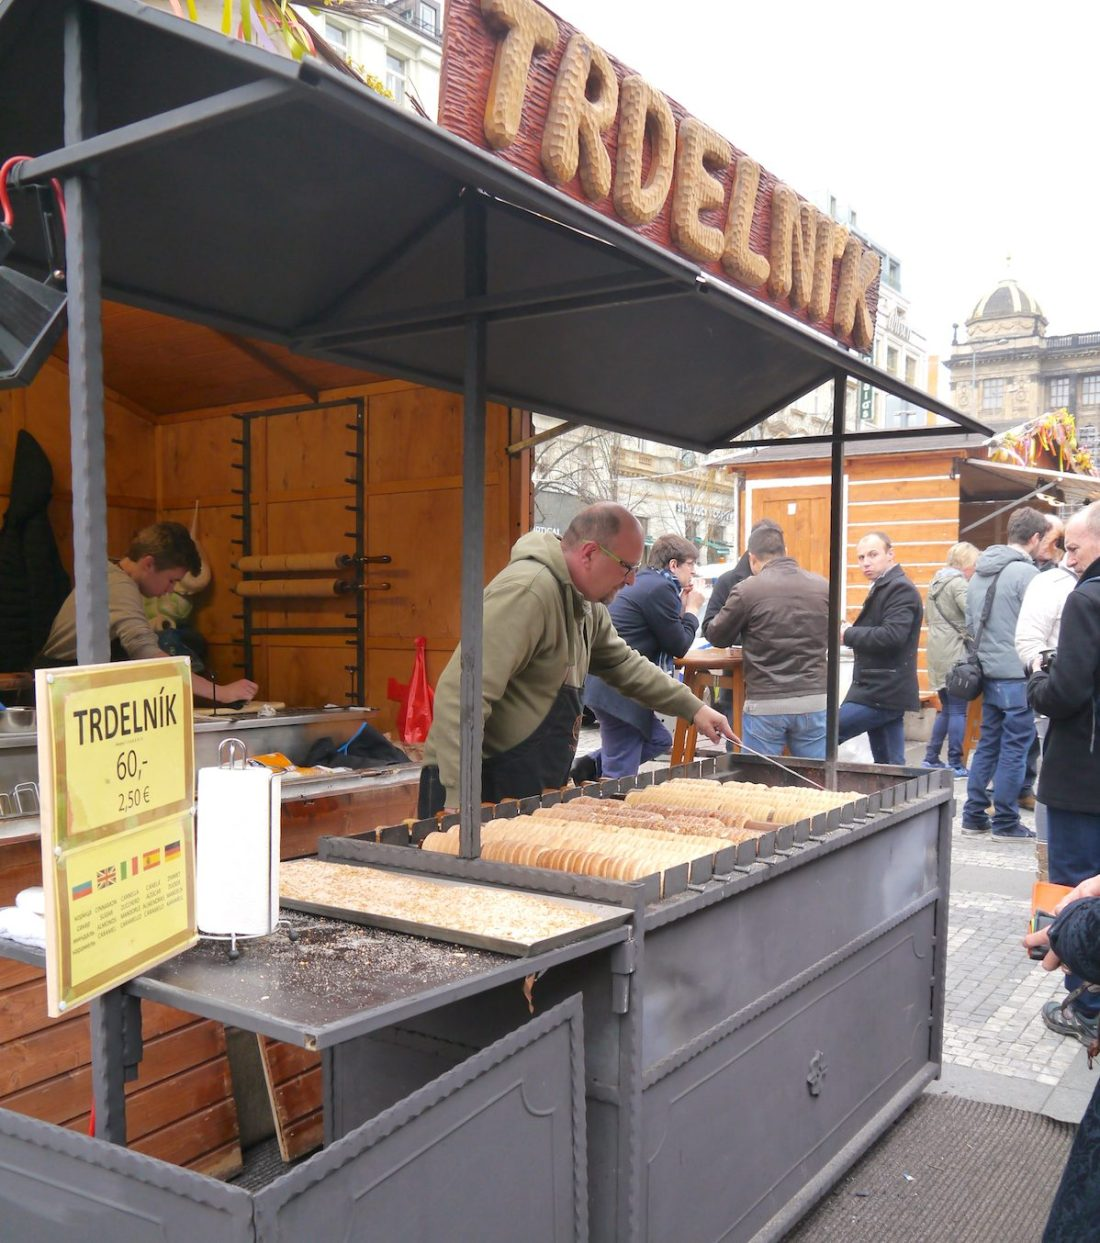 Cafés, Prague, Food Market, Trdelnik